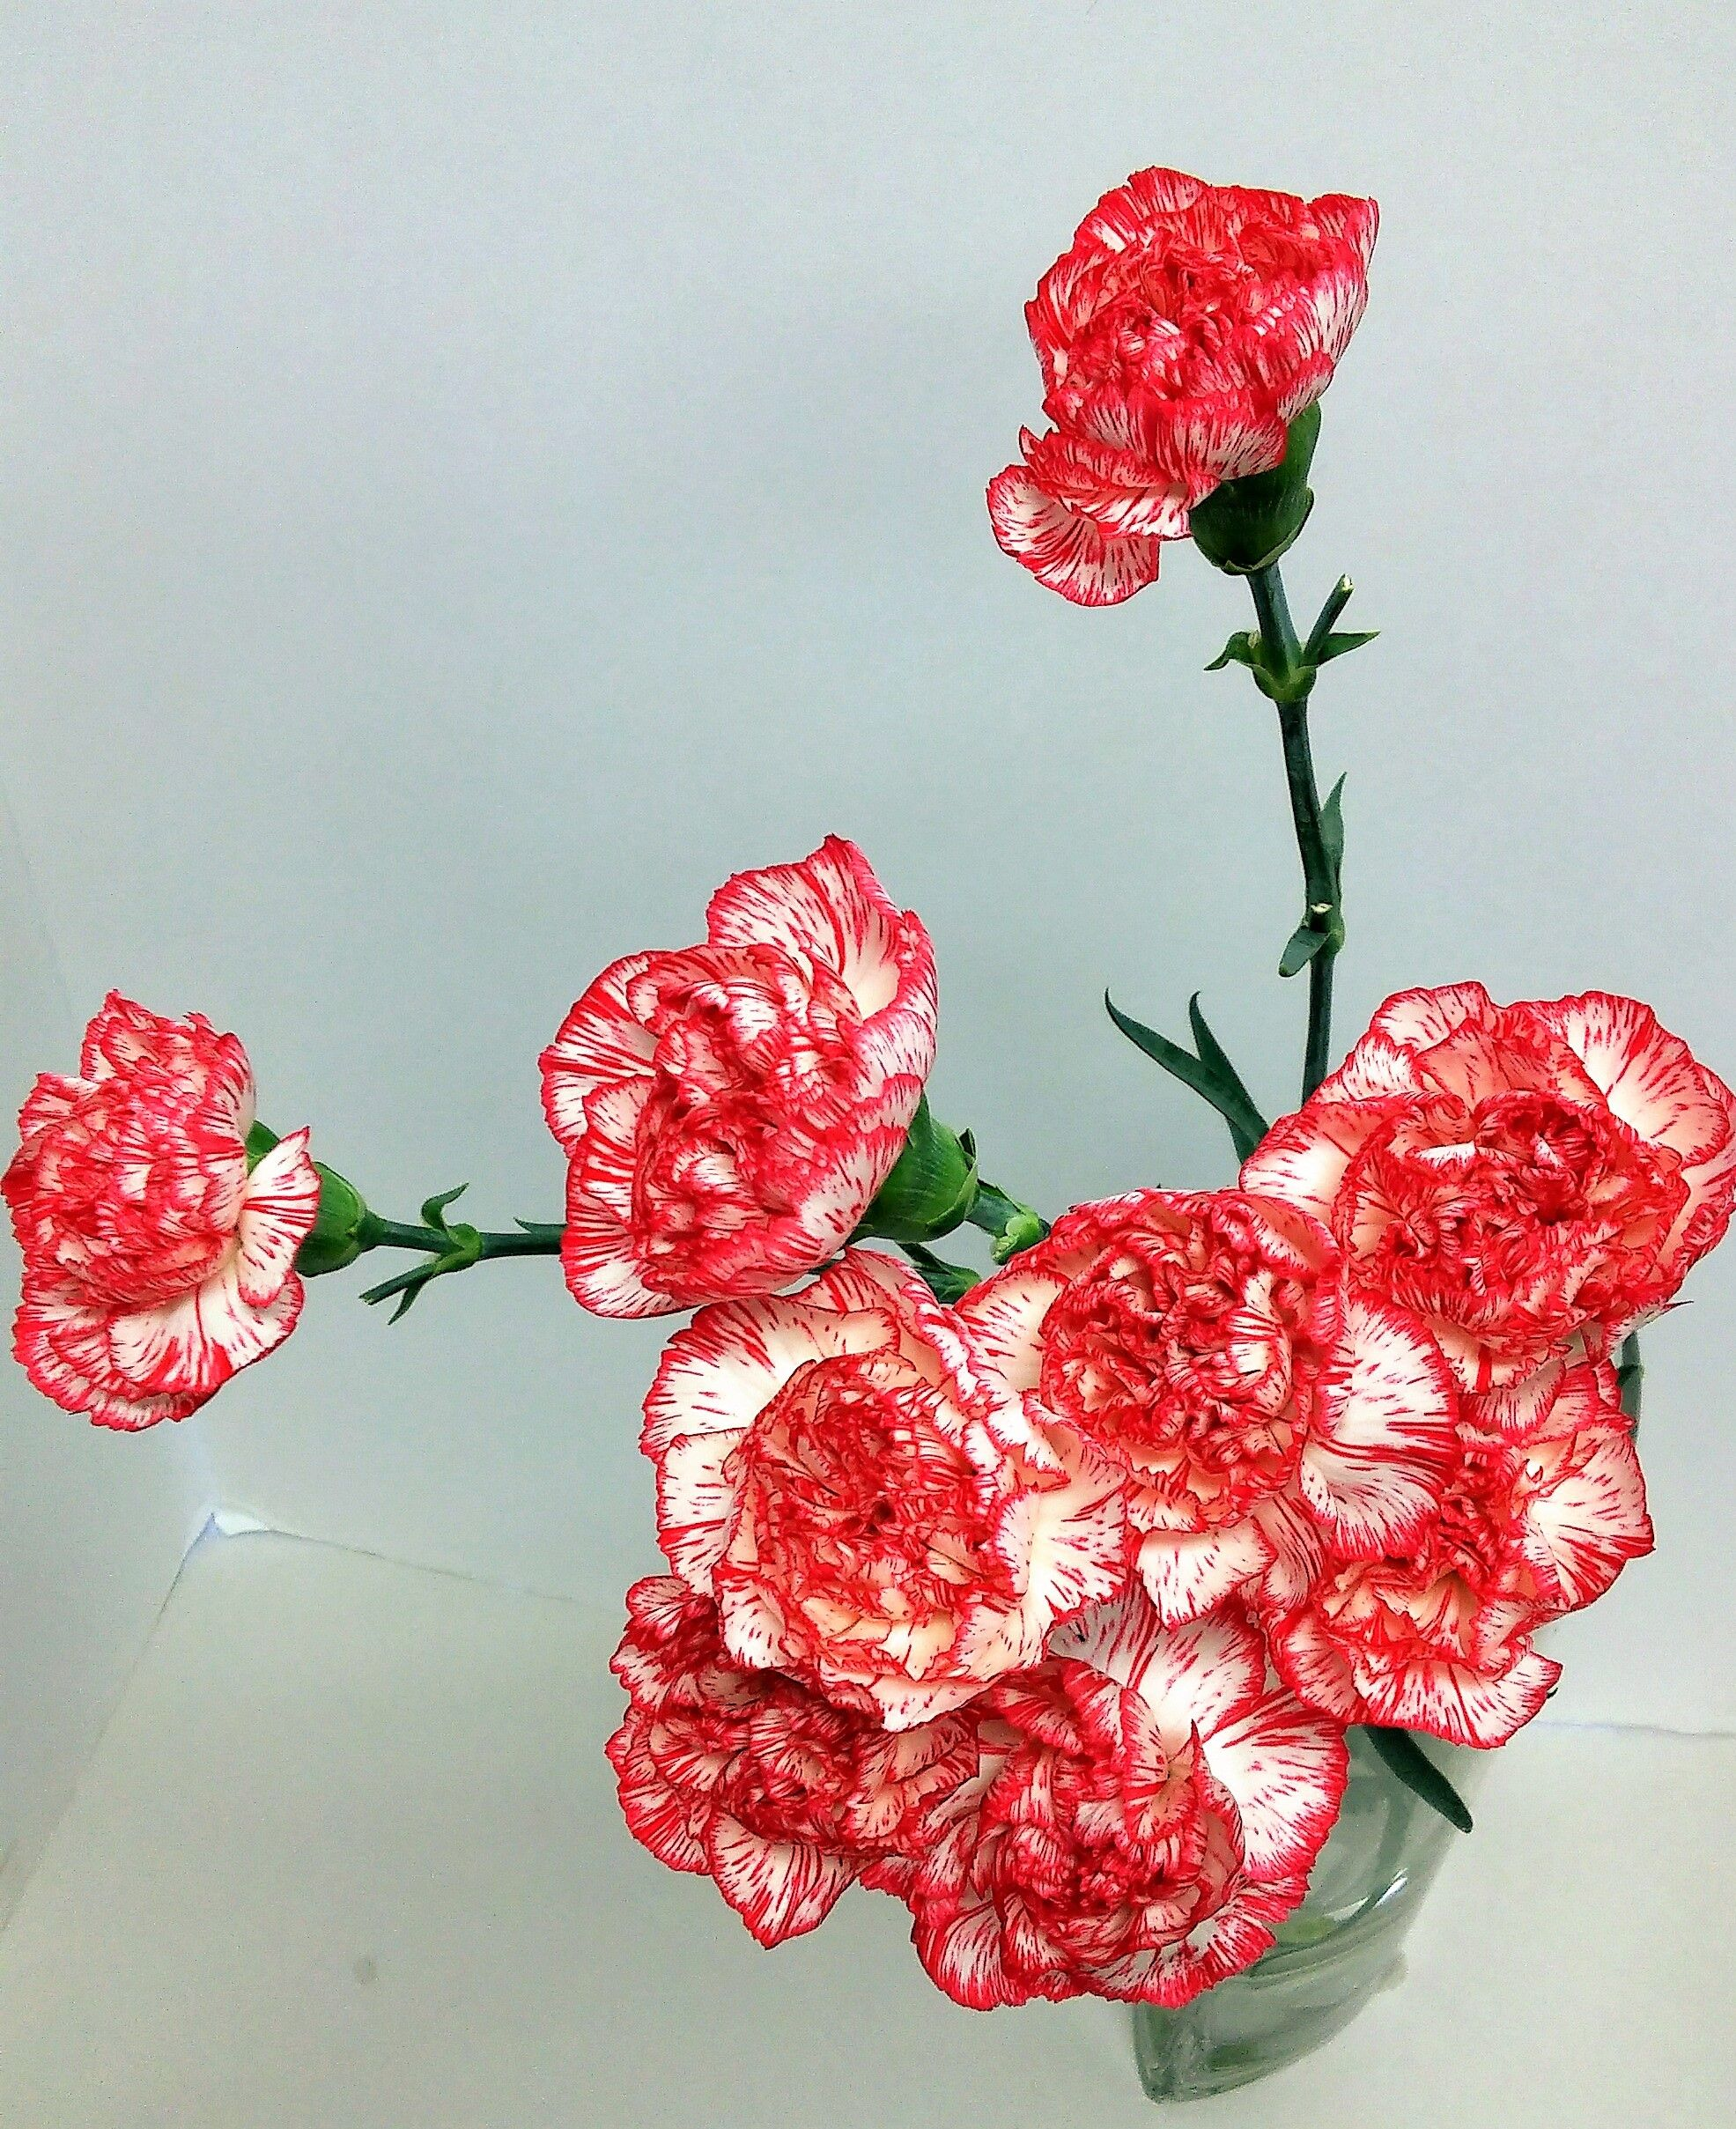 Peppermint Or Candycane Carnations Red And White Striped Carnations Perfect For Winter Time Arrangements Winter Flowers Order Flowers Online Flowers Online